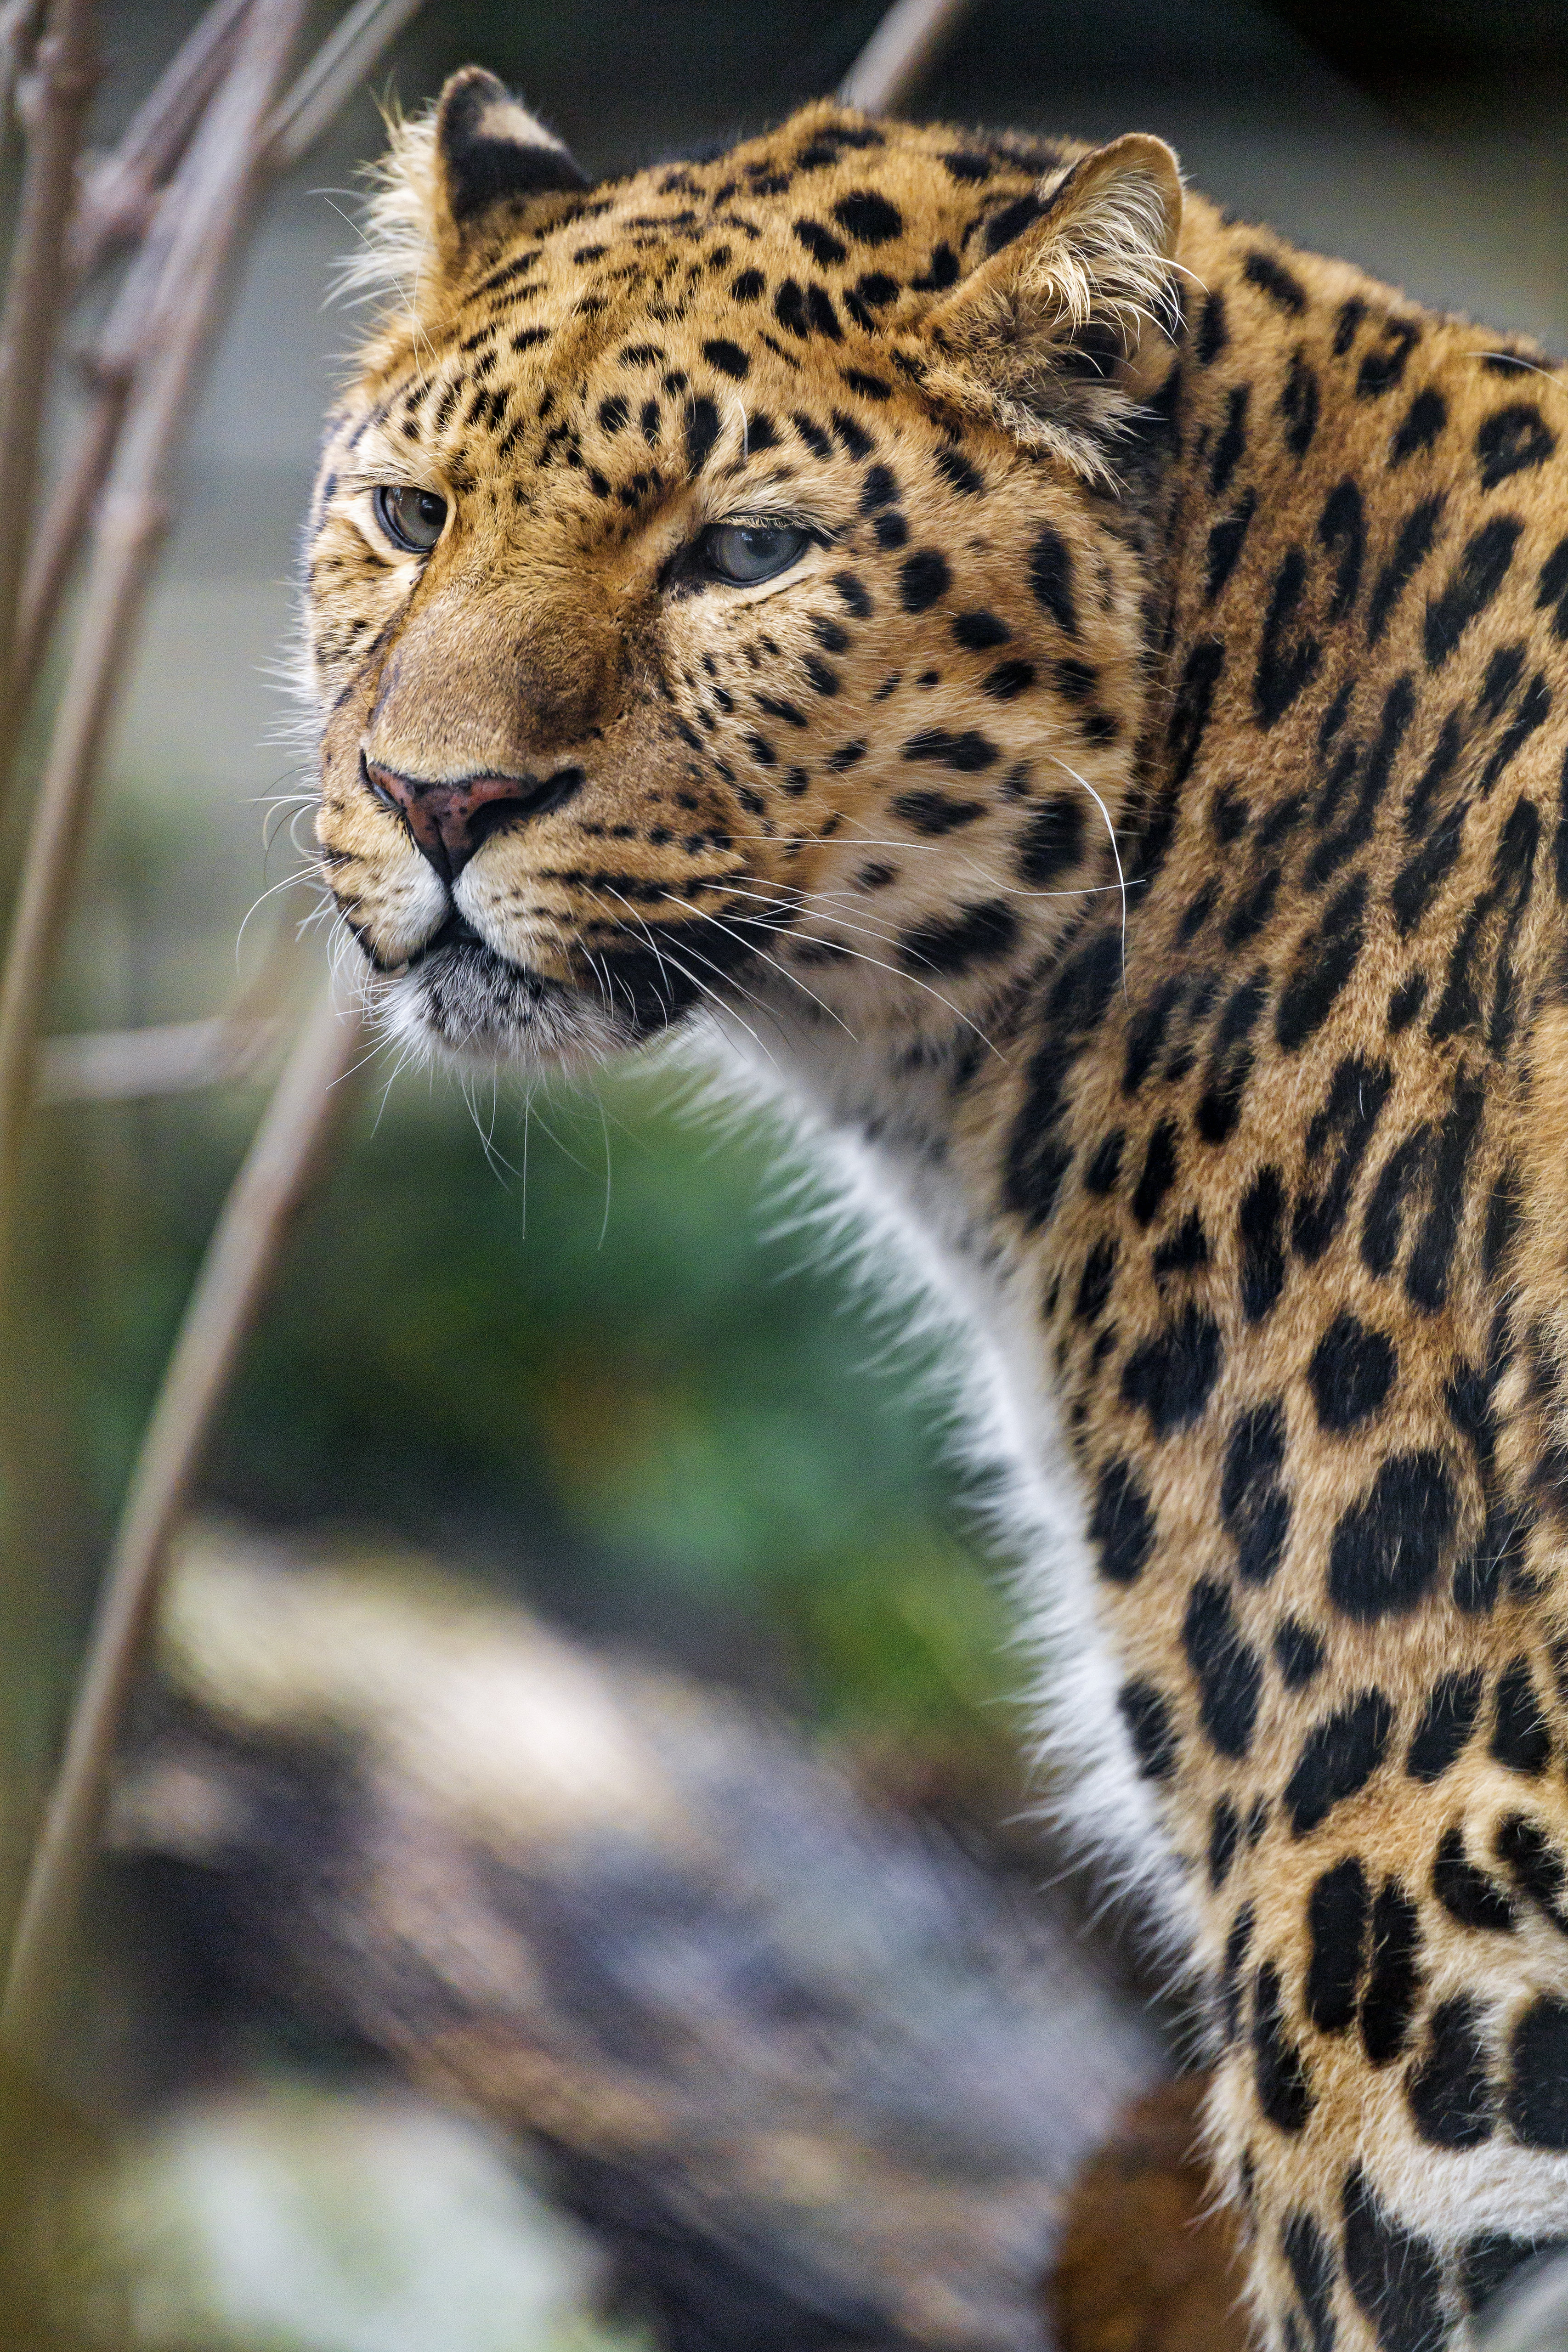 153910 download wallpaper Animals, Leopard, Big Cat, Predator, Sight, Opinion, Stains, Spots screensavers and pictures for free